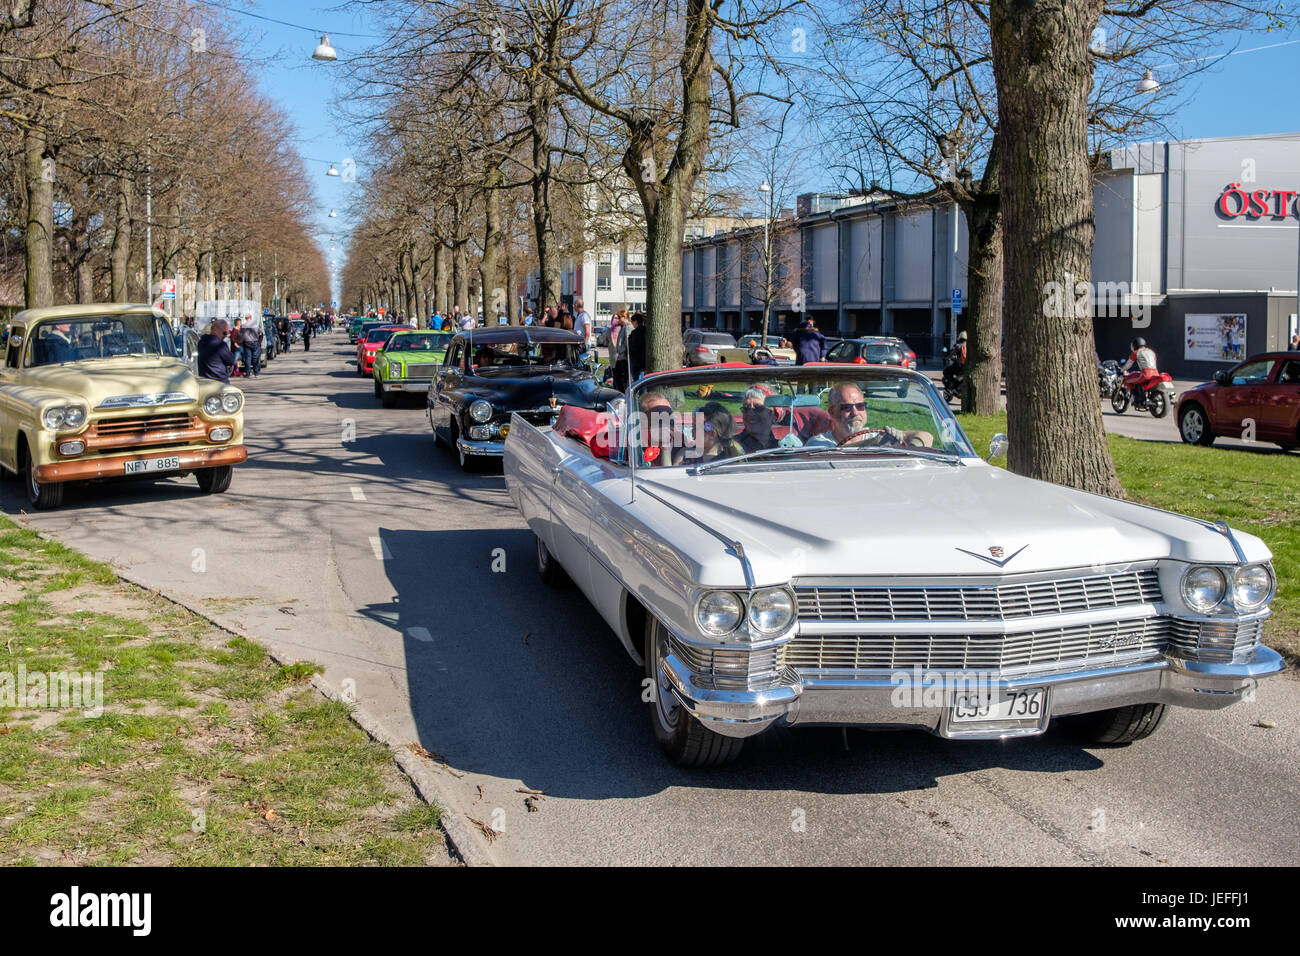 Cadillac De Ville, 1964, cabriolet at the traditional vintage car parade celebrating spring on May Day in Norrkoping, - Stock Image